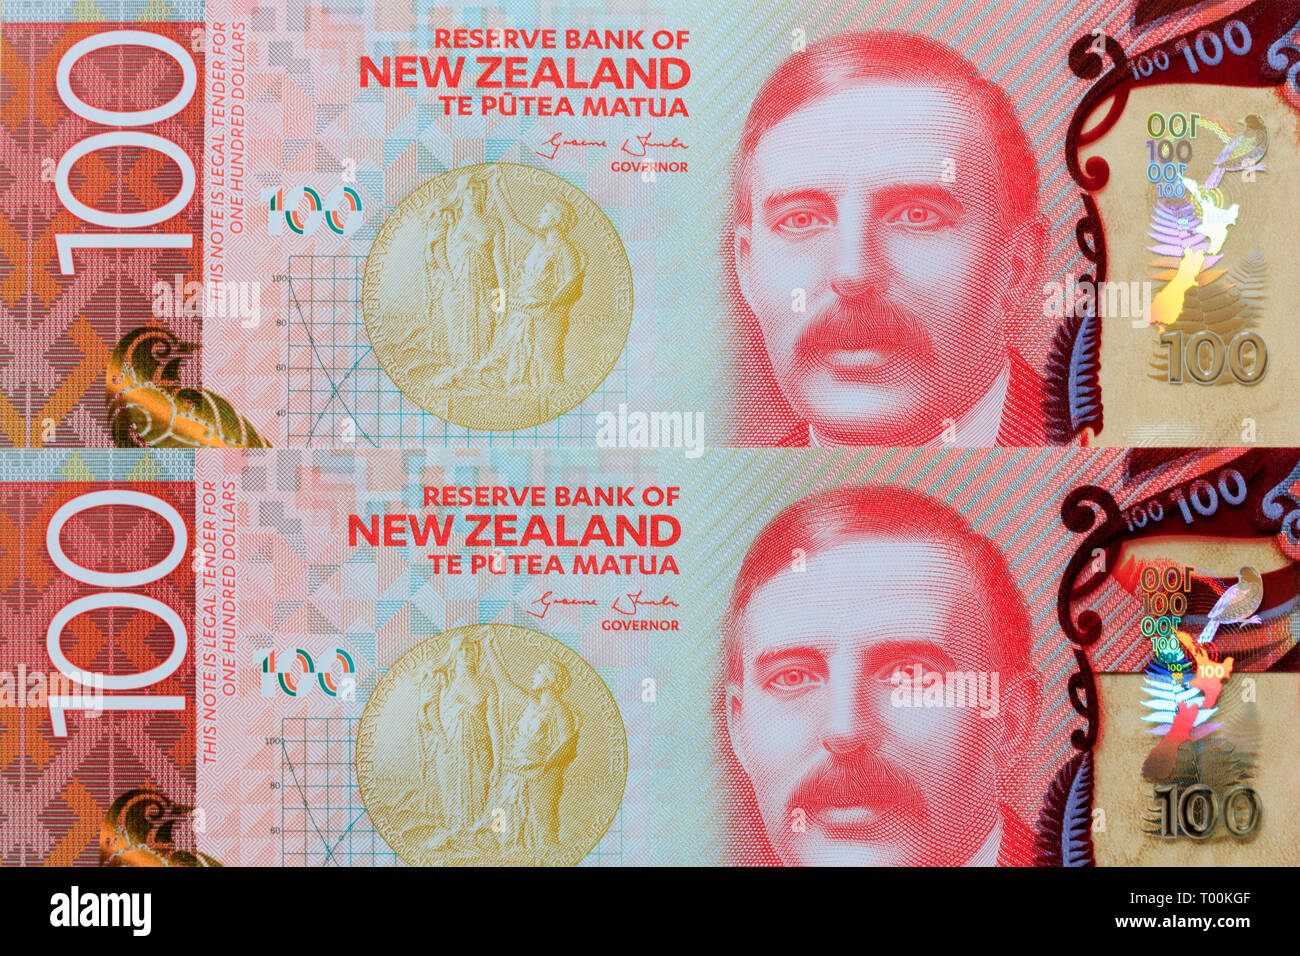 New Zealand 100 dollar paper currency note, Auckland, New Zealand - Stock Image